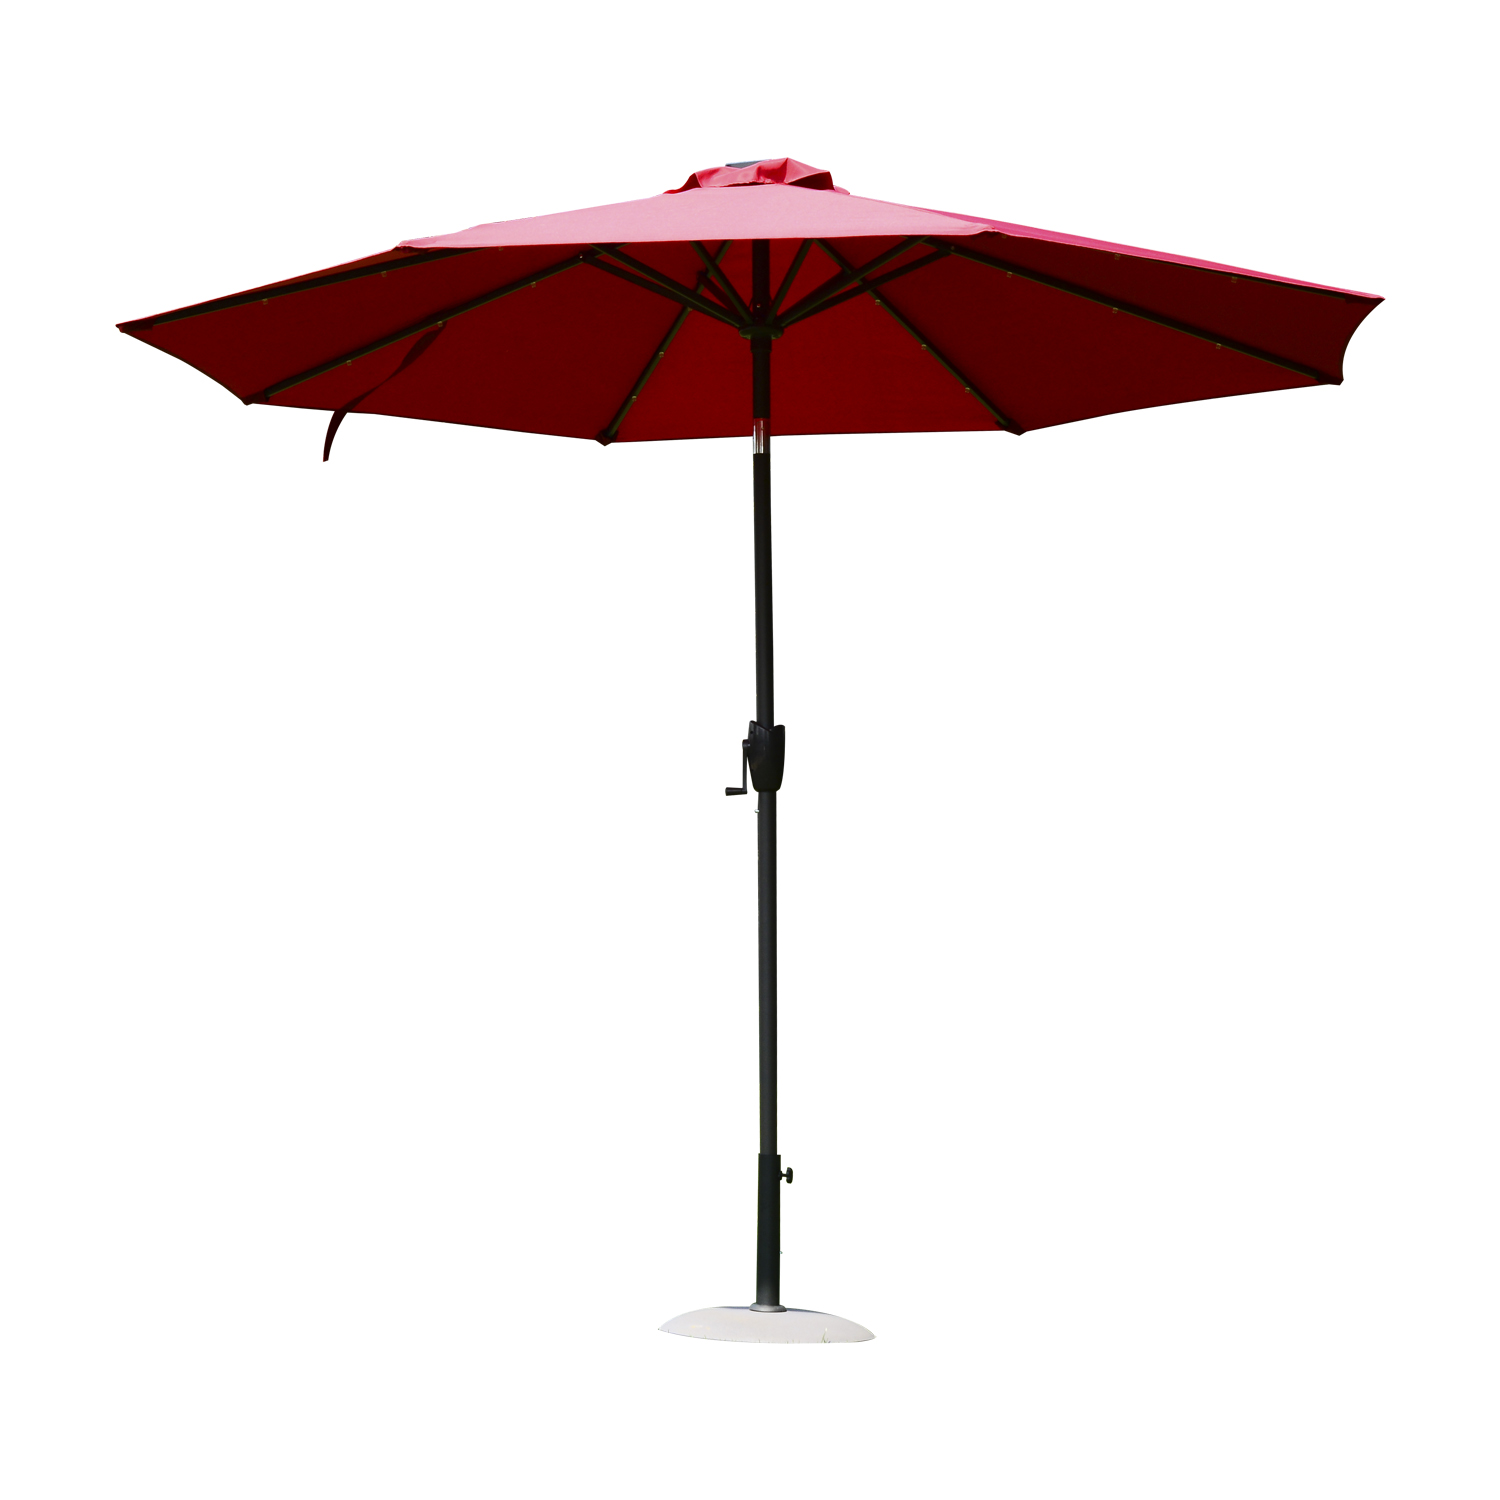 Image of CAD $119.99 Outsunny 9' Solar LED Patio Outdoor Umbrella for Garden and Market, Sunshade, Beach Parasol Steel, Wine Red / Market Sunshade Steel Canada 25093571794